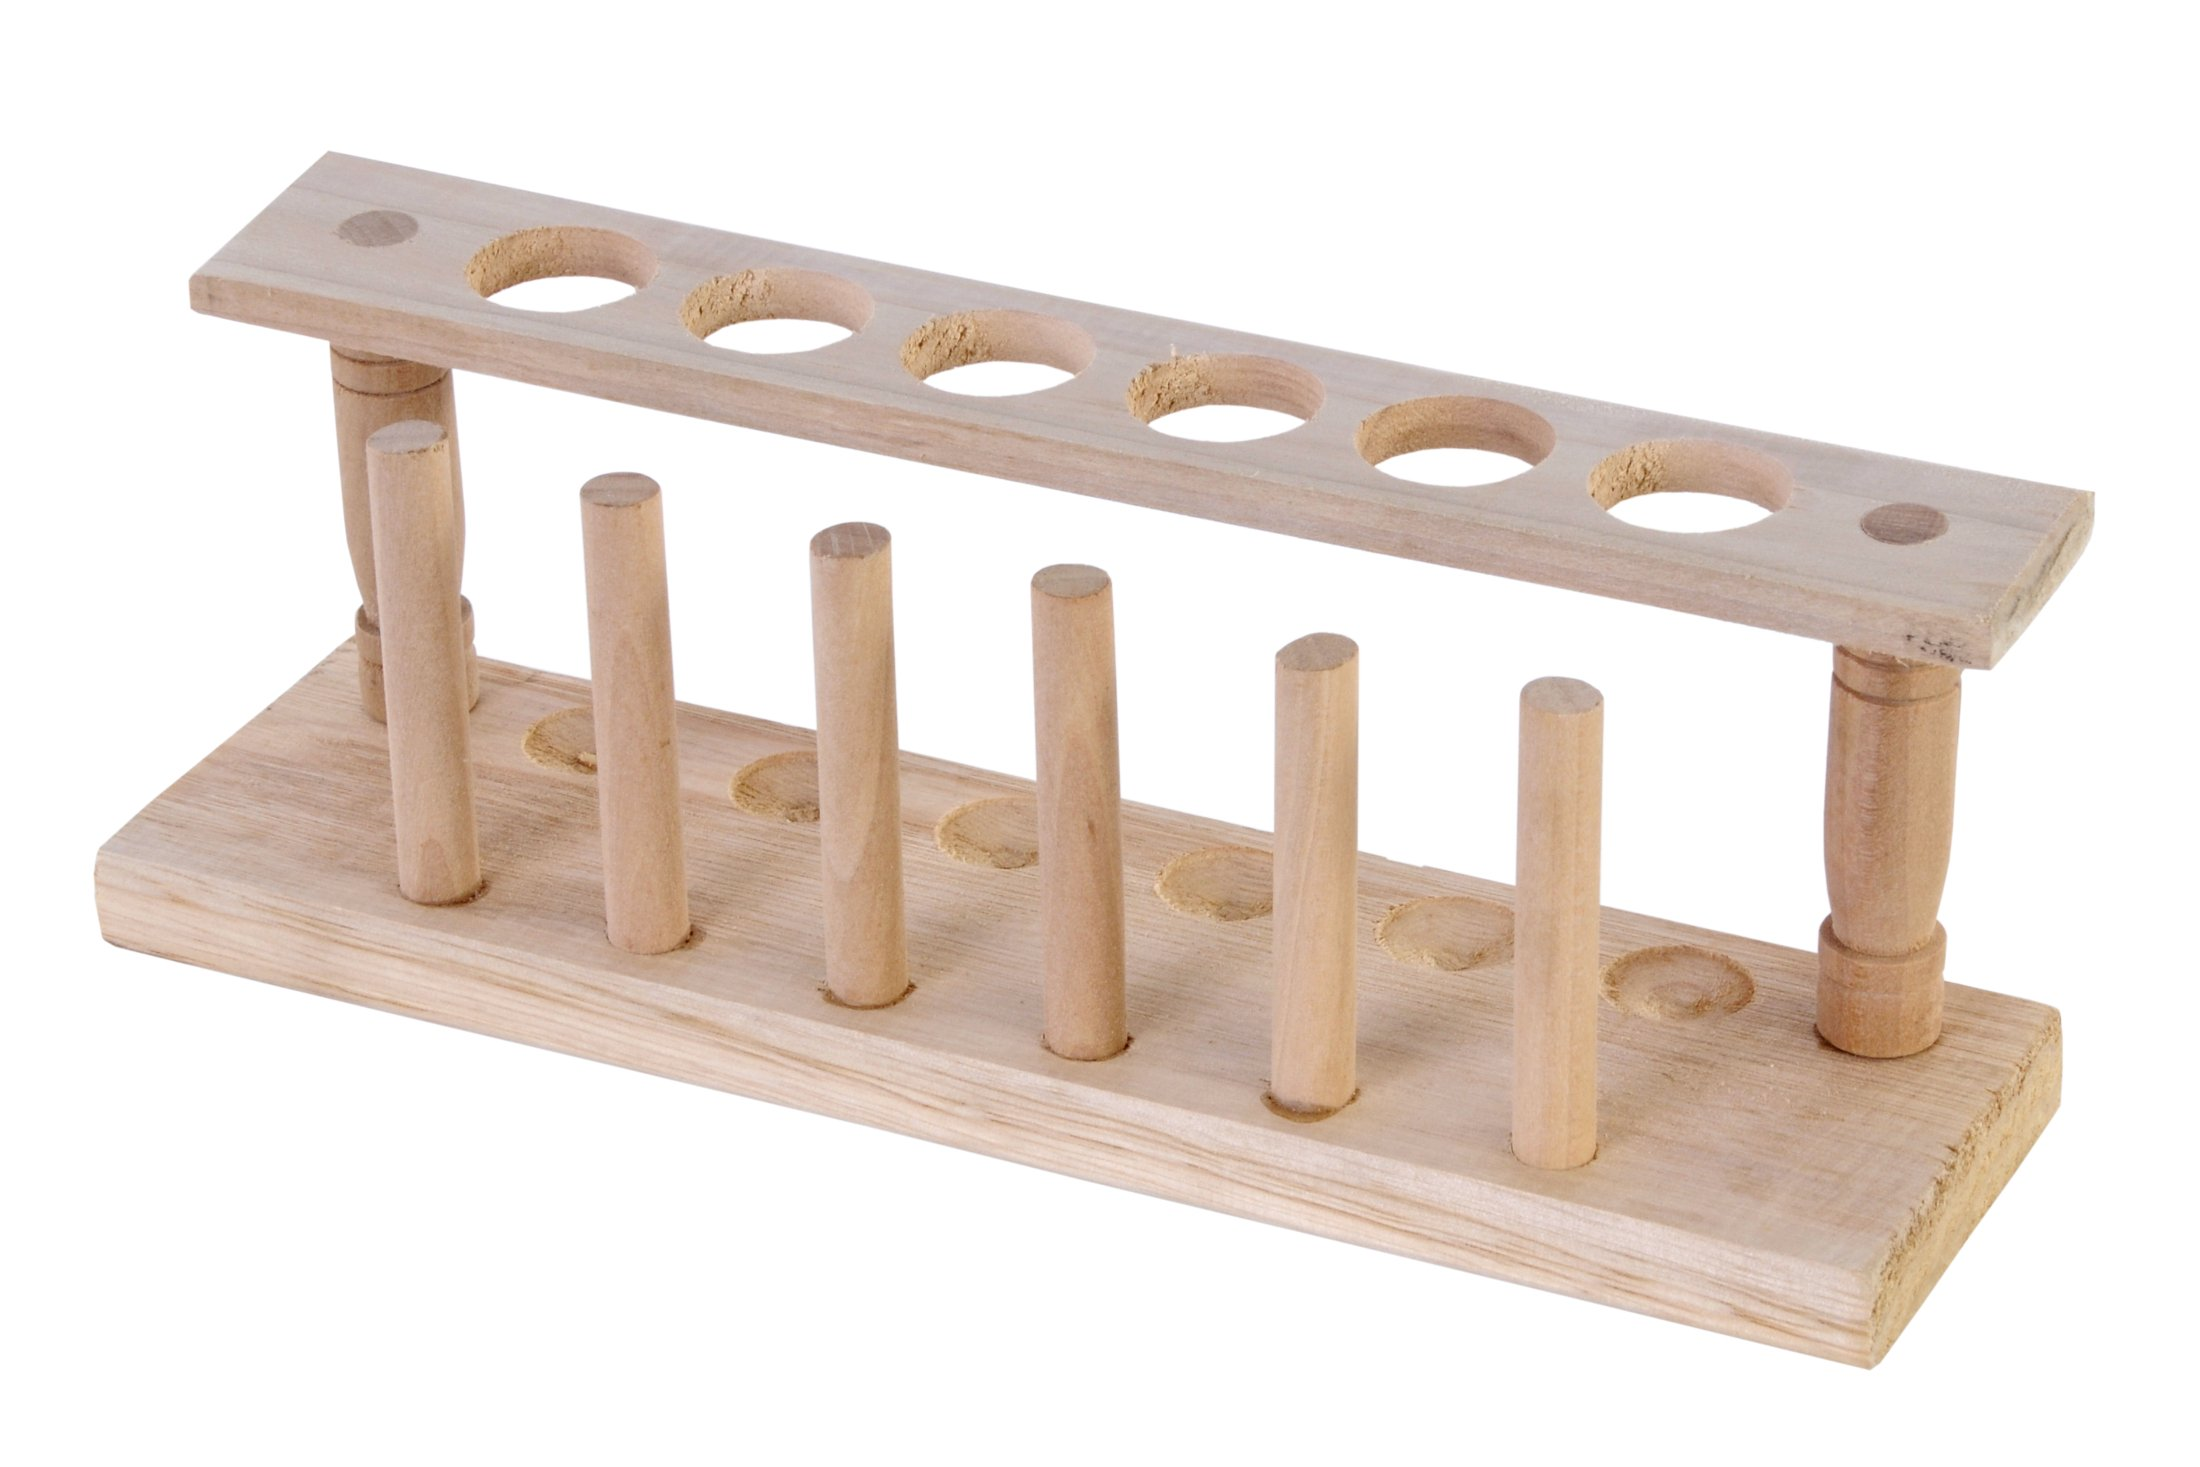 American Educational Wooden 1 Row Test Tube Rack, 6 Tube